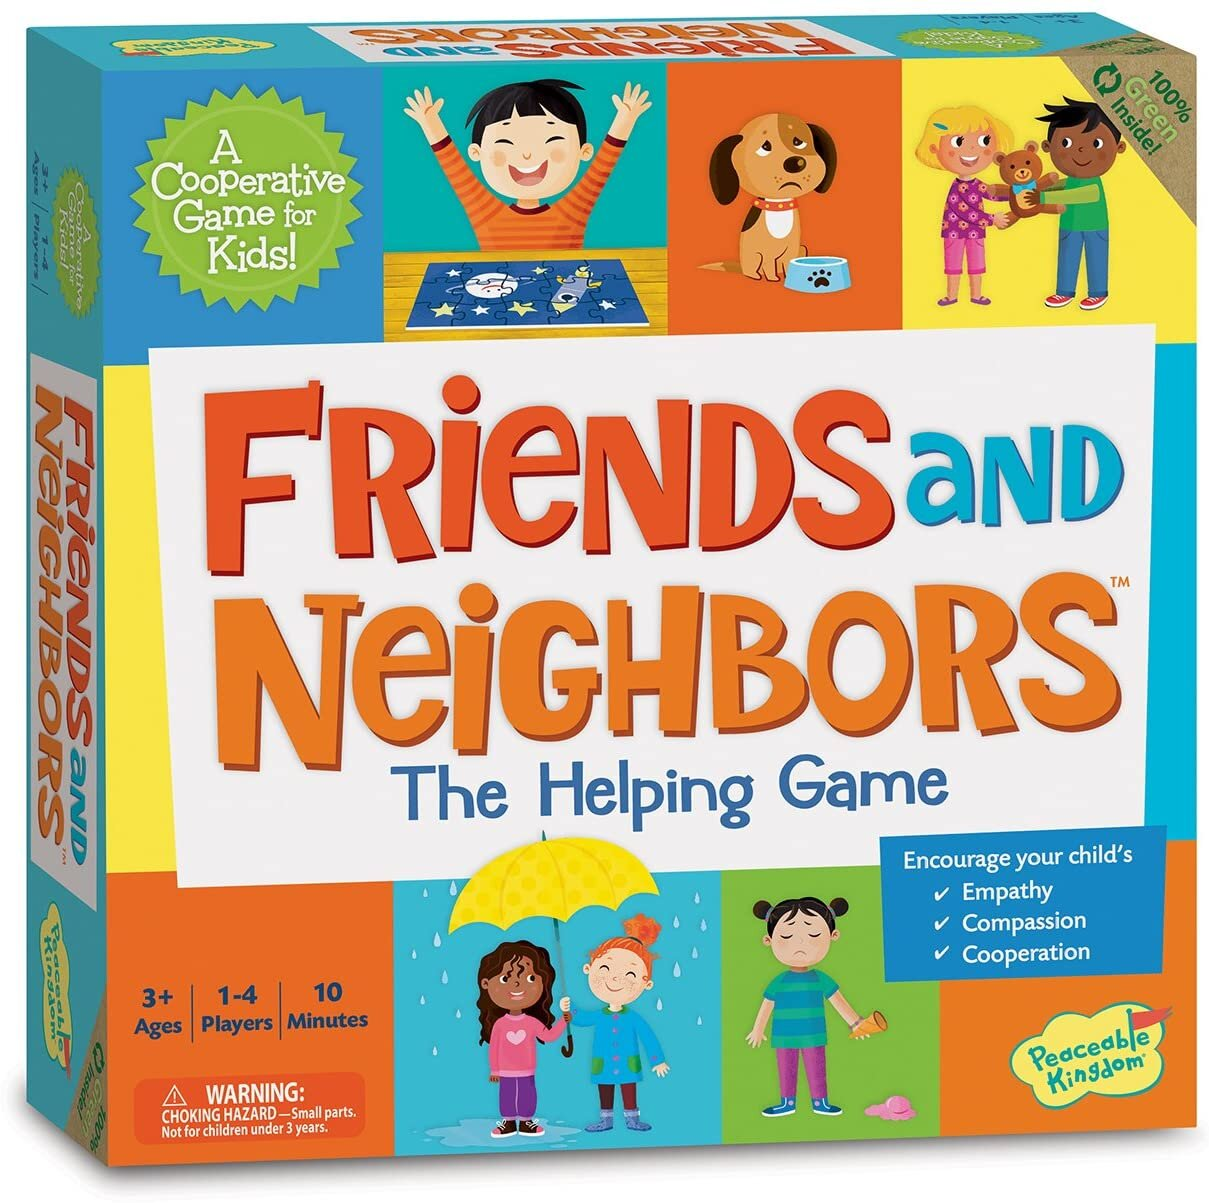 [Image Description: Image of the Friends and Neighbors Helping Game. Features various images of children. For ages 3 and up. 1-4 players. 10 minute game length.]